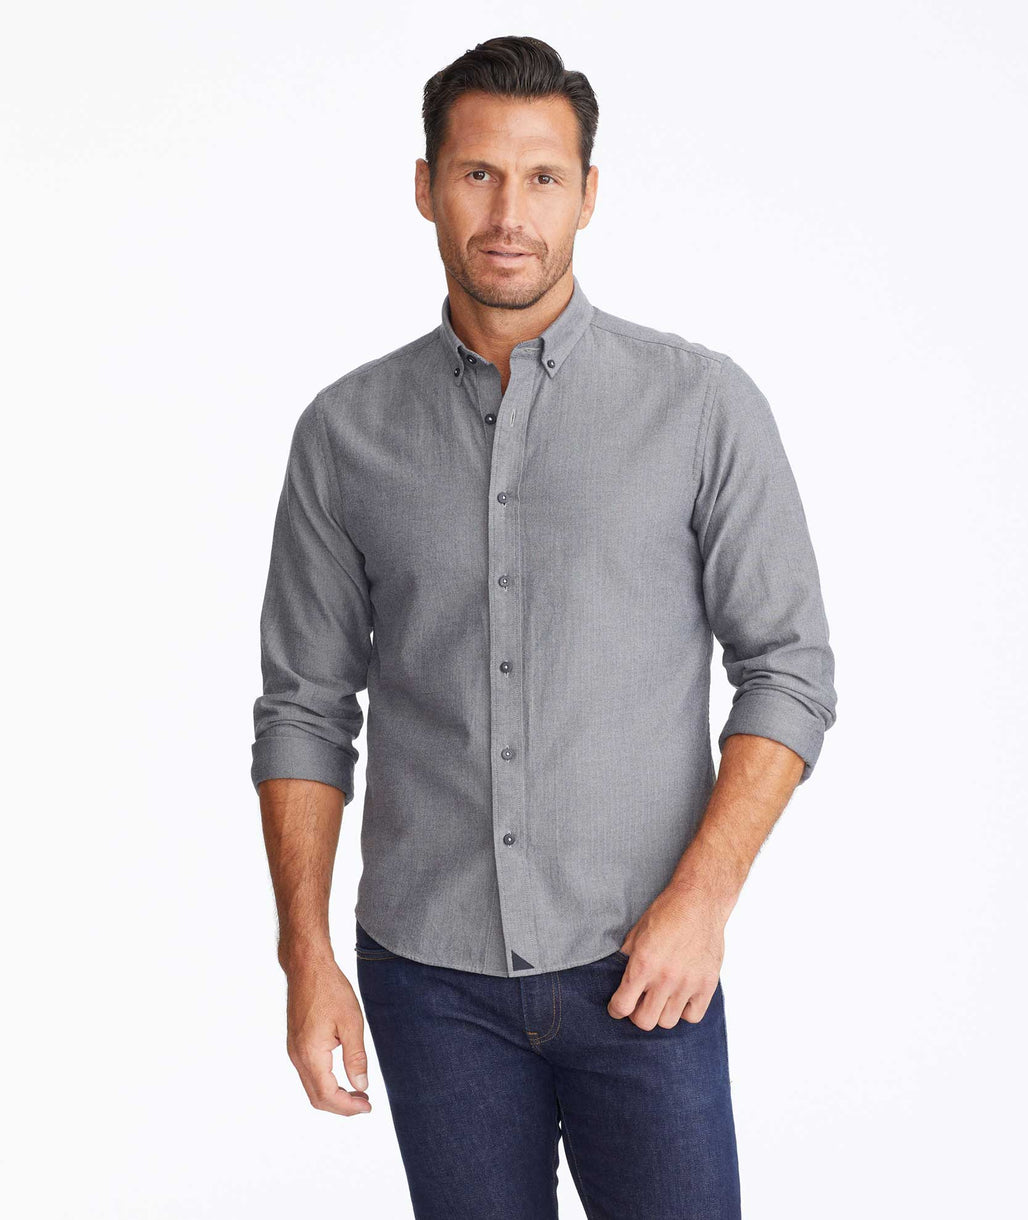 Model wearing a Dark Grey Flannel Librando Shirt